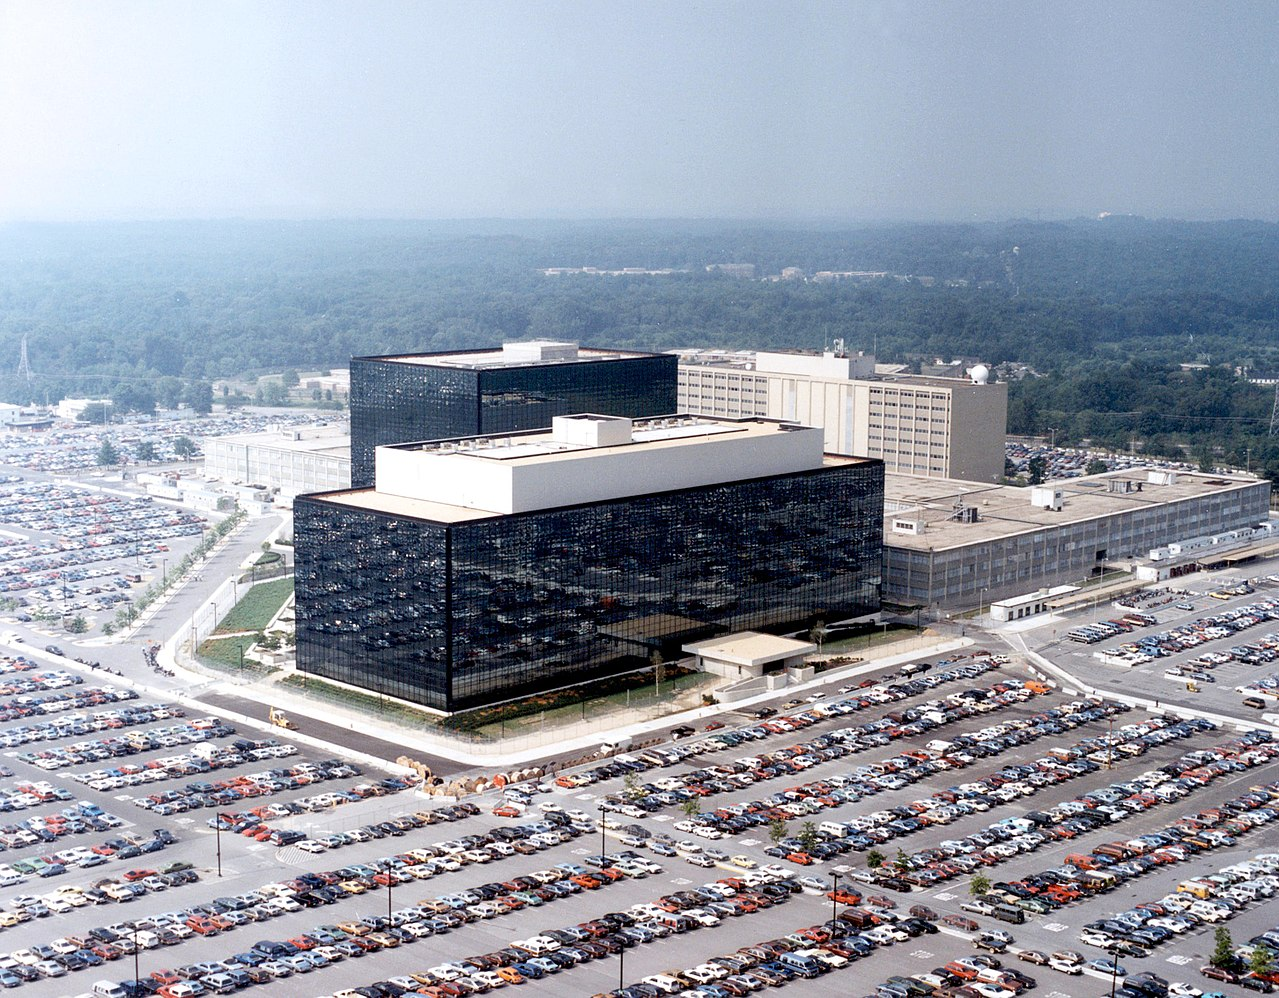 The National Security Agency's headquarters, Fort Meade, Maryland. Image courtesy of the NSA, via Wikimedia Commons